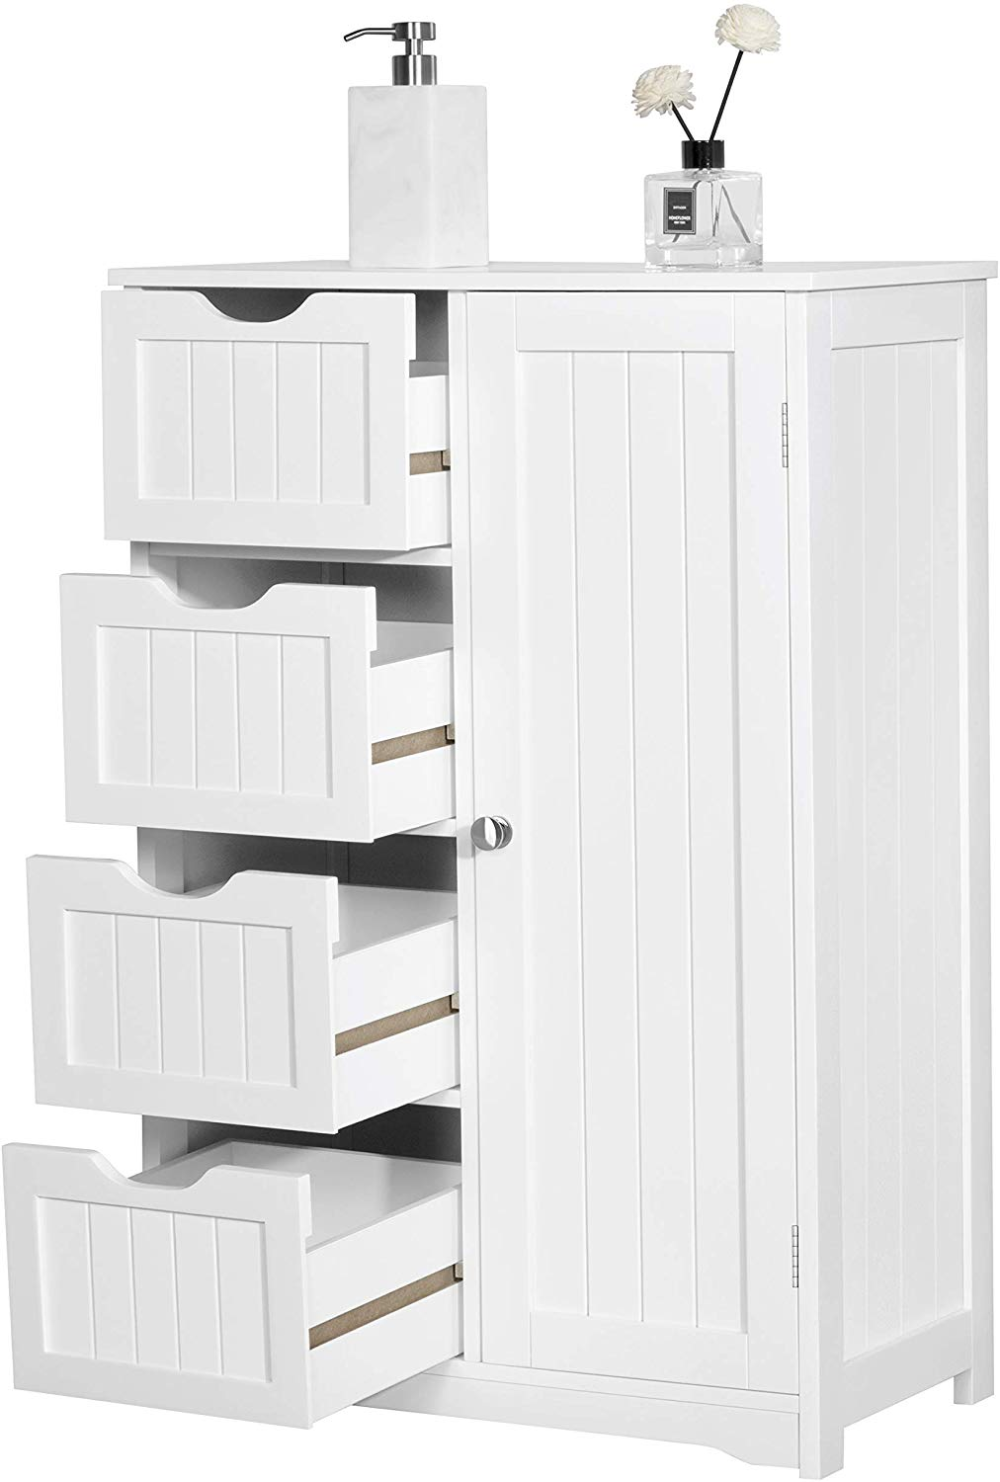 Amazon Com Topeakmart Free Standing Cabinet Wooden Bathroom Cabinet Storage Cabinets Four D Wooden Bathroom Cabinets Bathroom Storage Cabinet Storage Cabinets